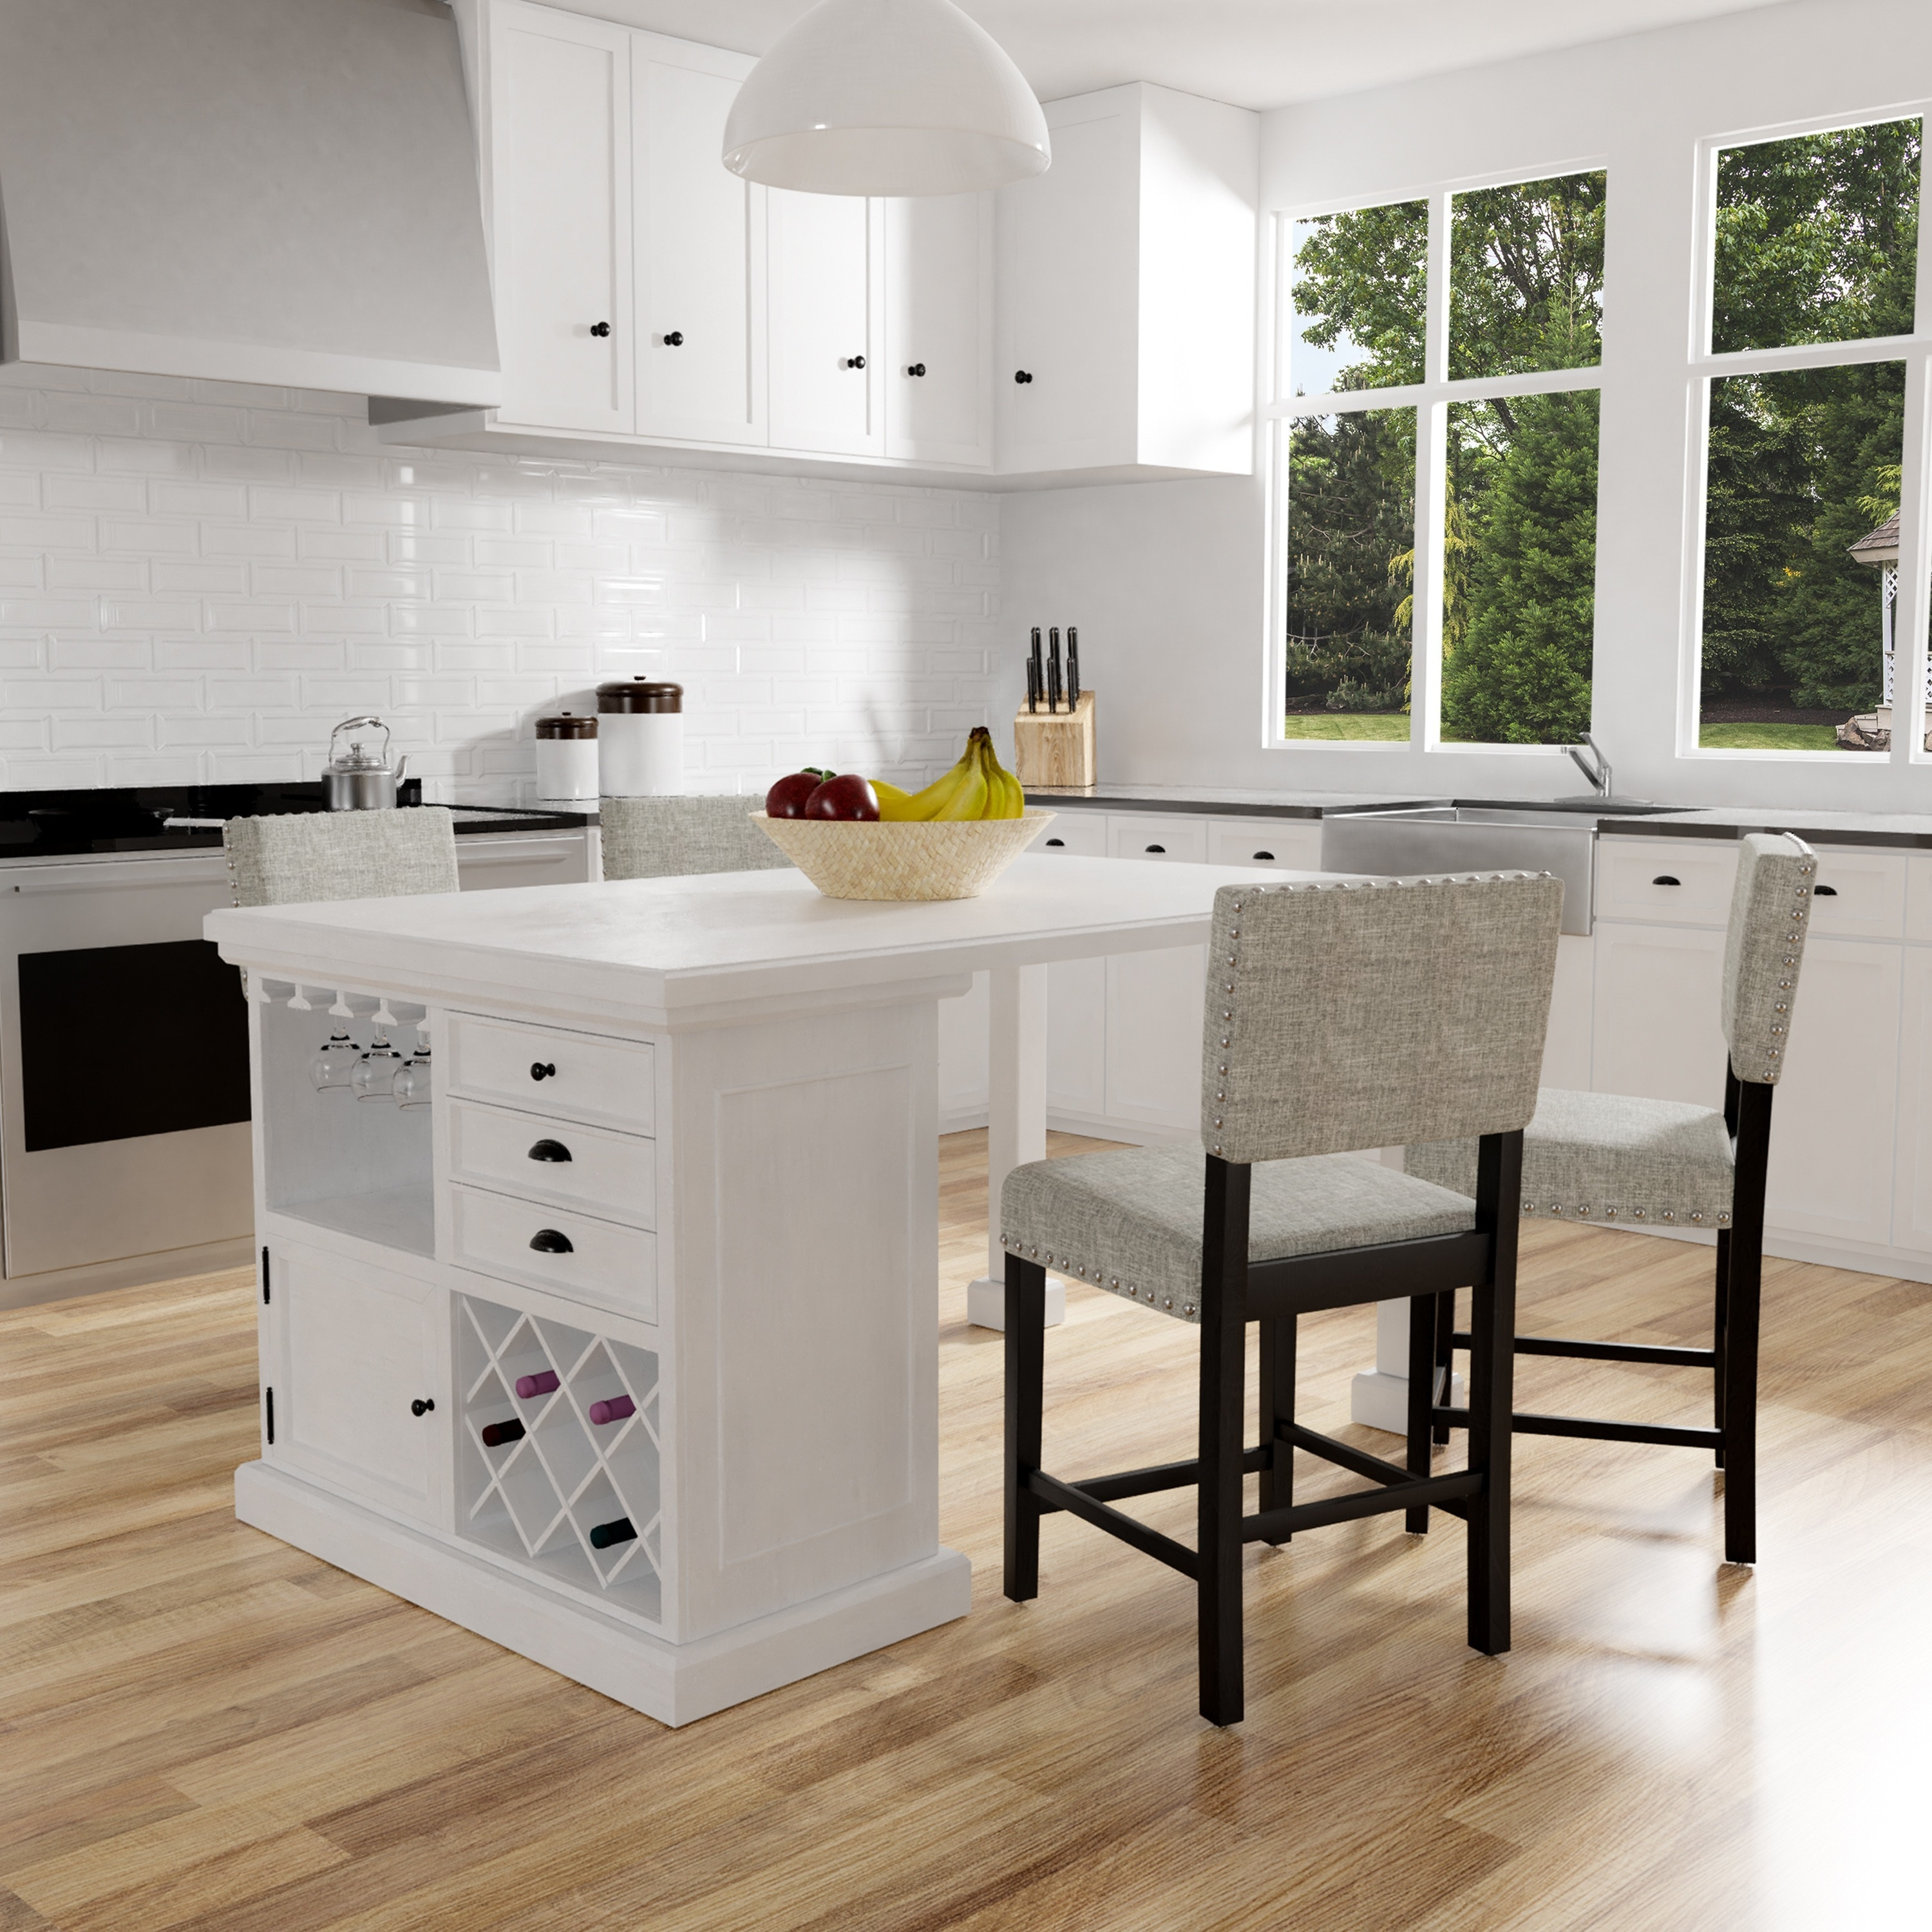 Kitchen Island Clearance Sale Tia Modern Antique White Counter Height Kitchen Island Table By Foa